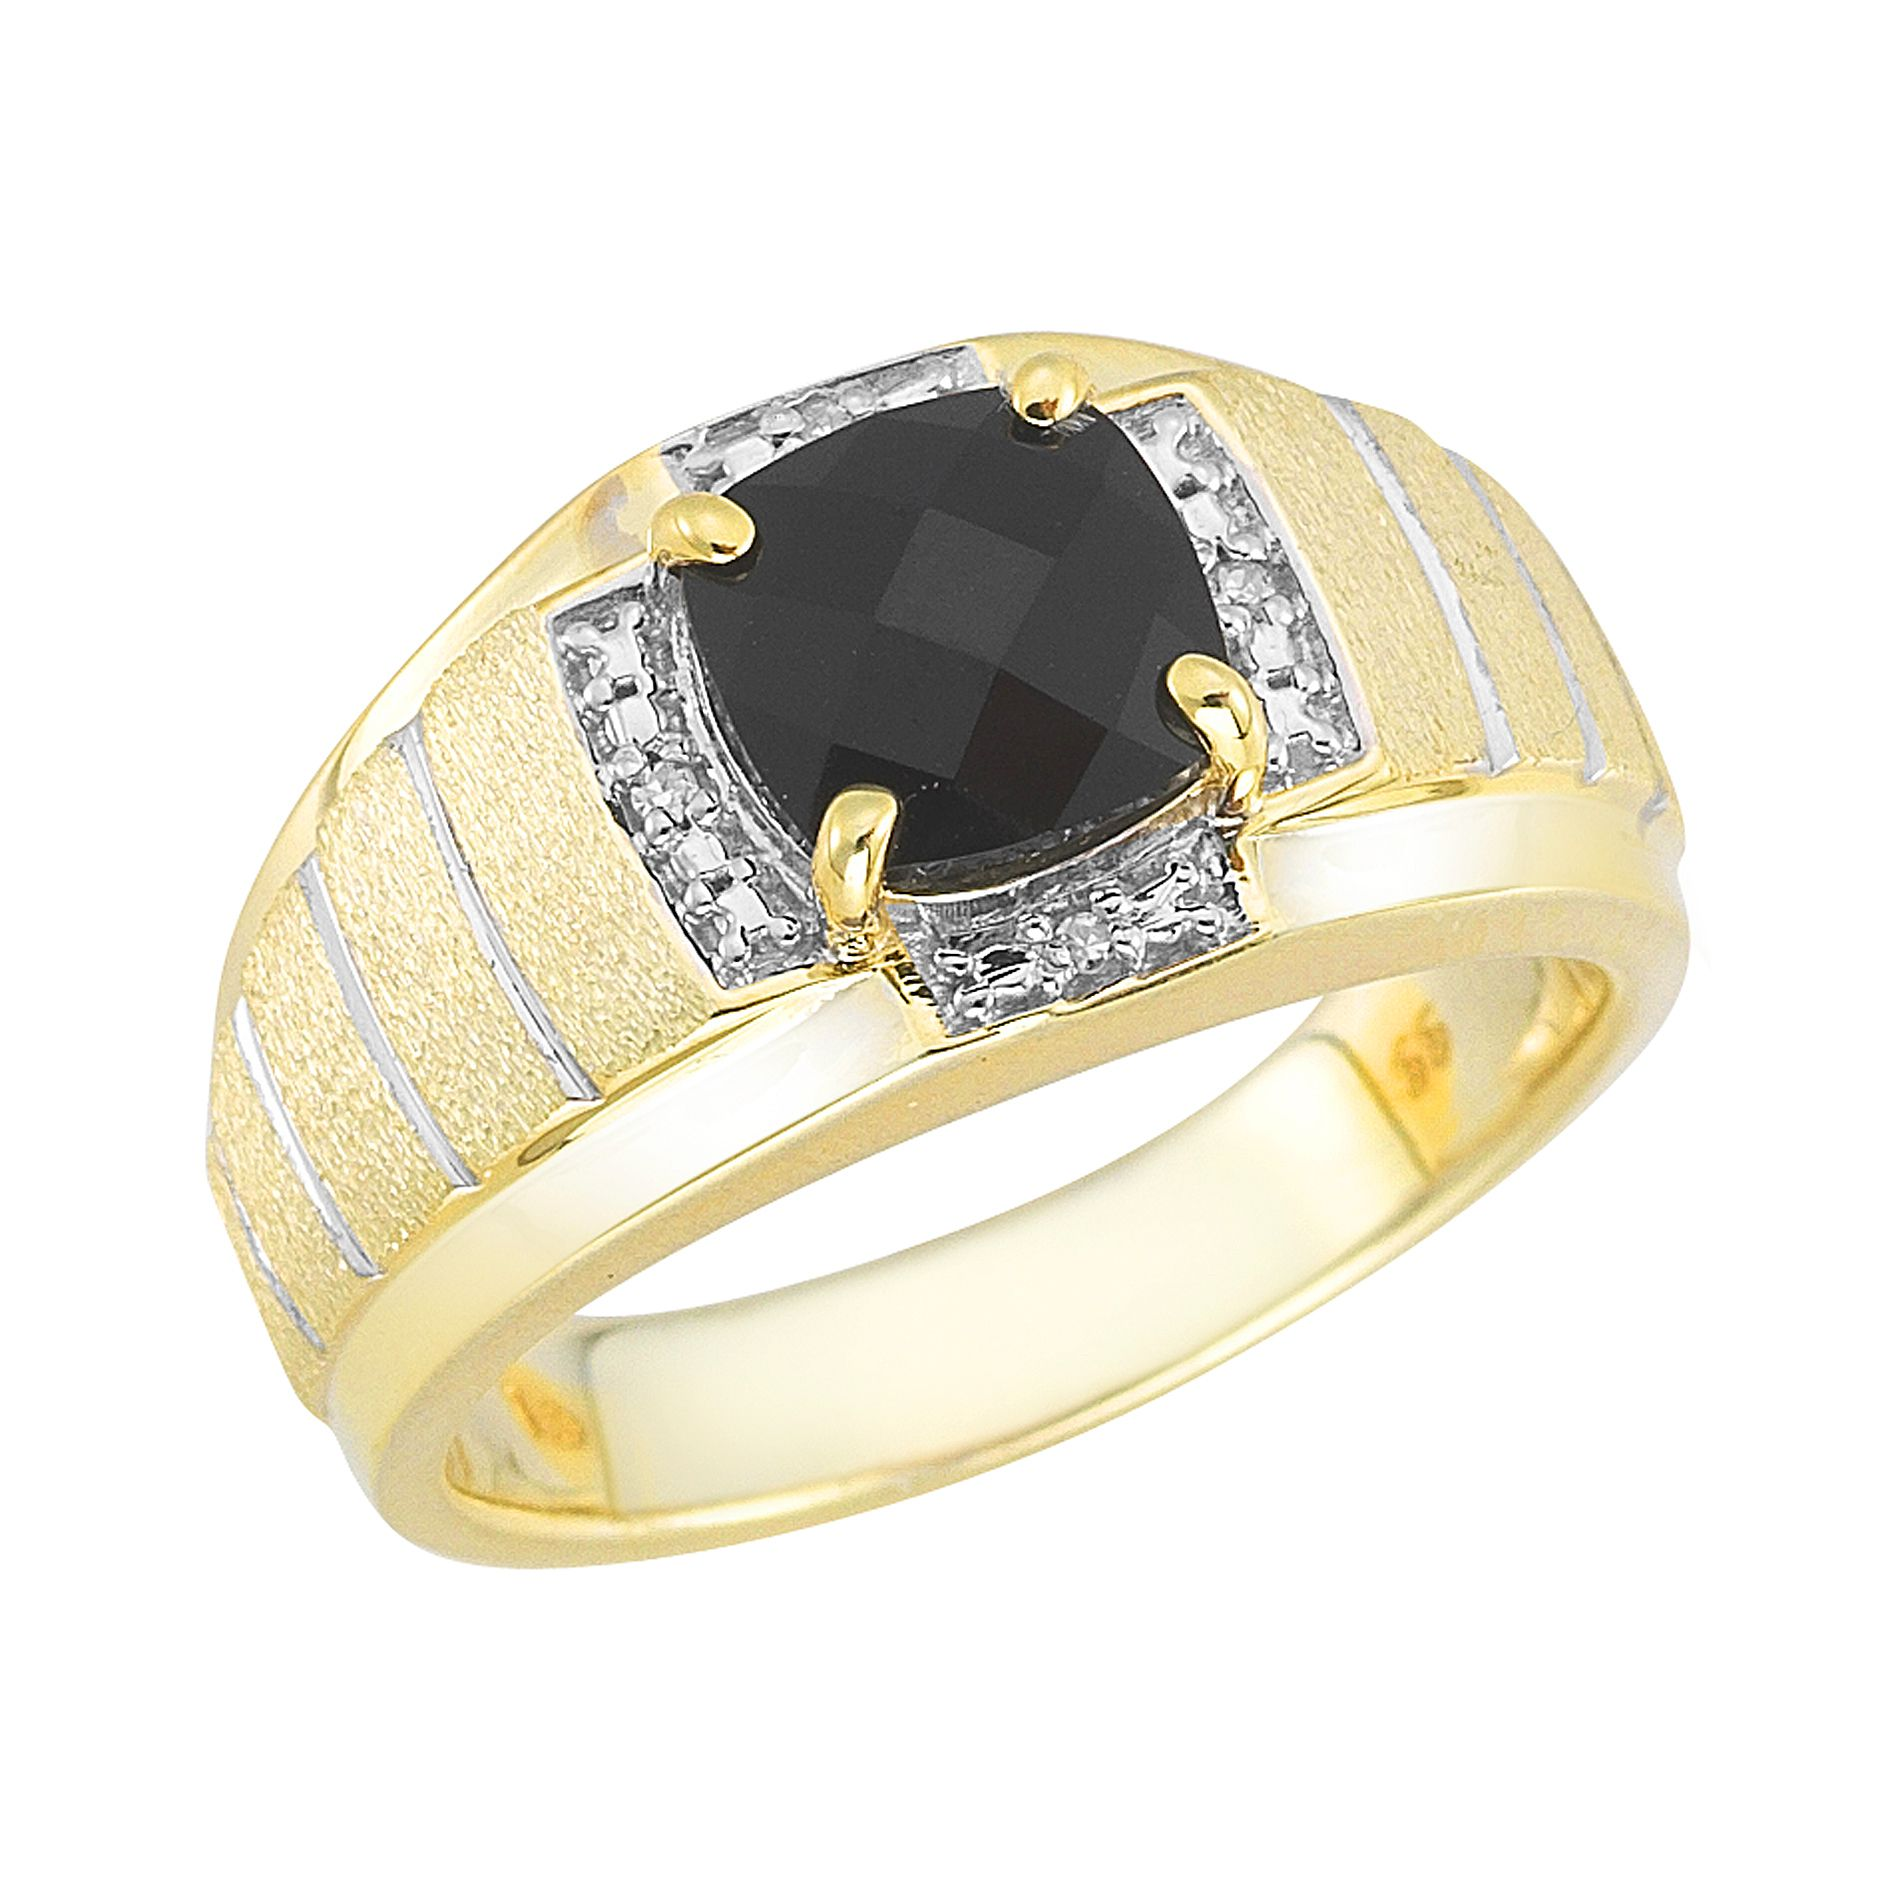 18Kt Gold Over Sterling Silver Black Onyx and